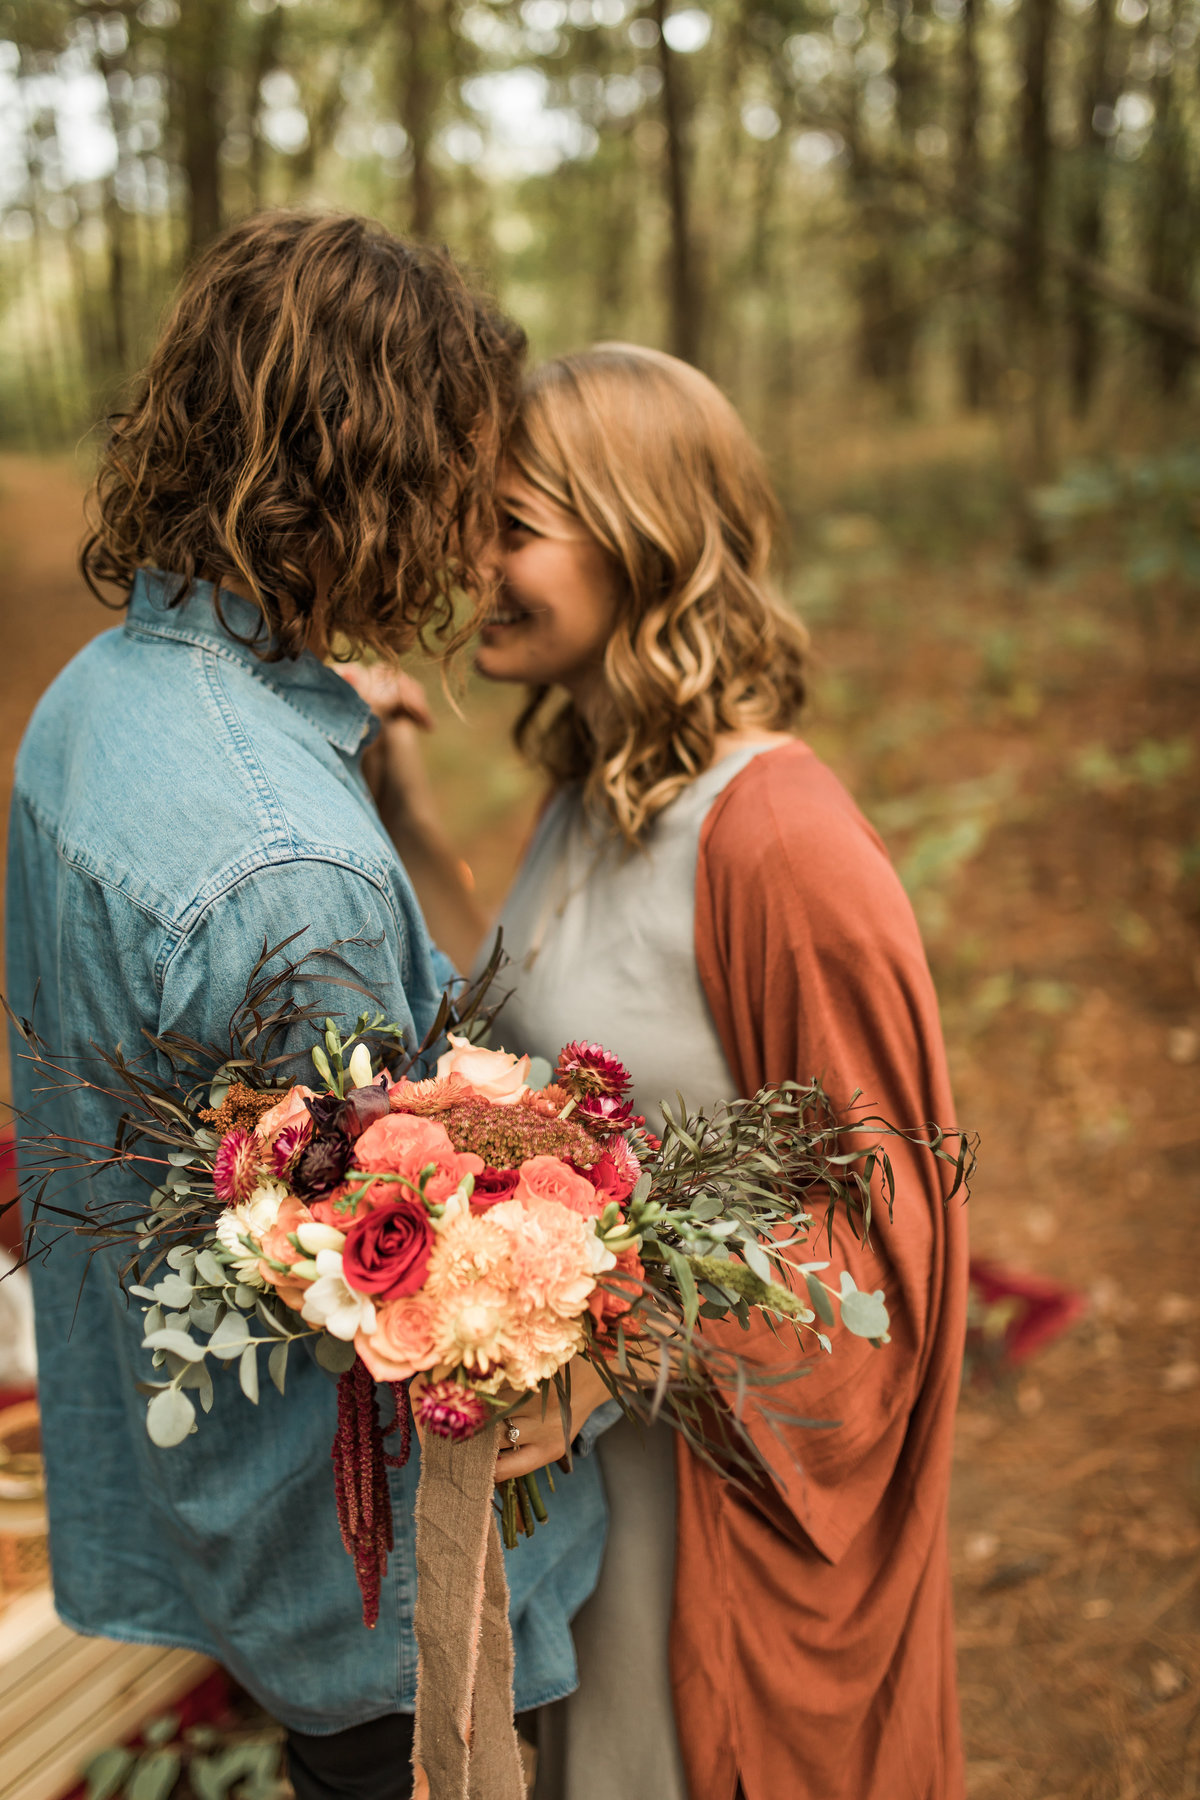 Busch Wildlife  Defiance, MO  Fall Picnic Colorado Themed Surpise Proposal  Cameron + Mikayla  Allison Slater Photography308